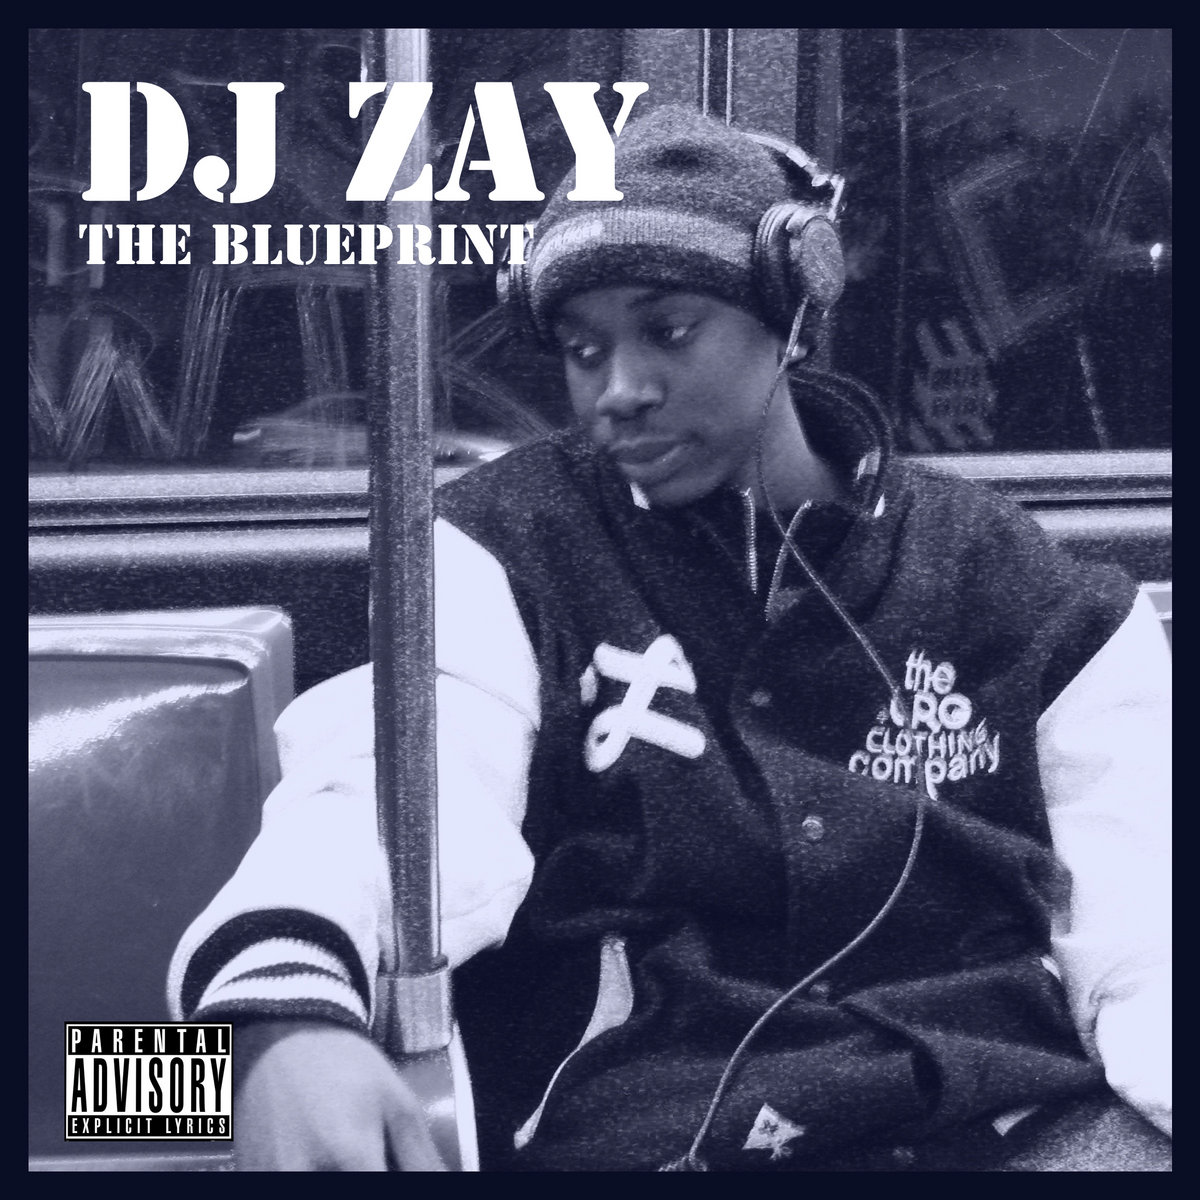 Blueprint mama loves me dj zay remix dj zay from the blueprint a fair alternative by dj zay malvernweather Image collections